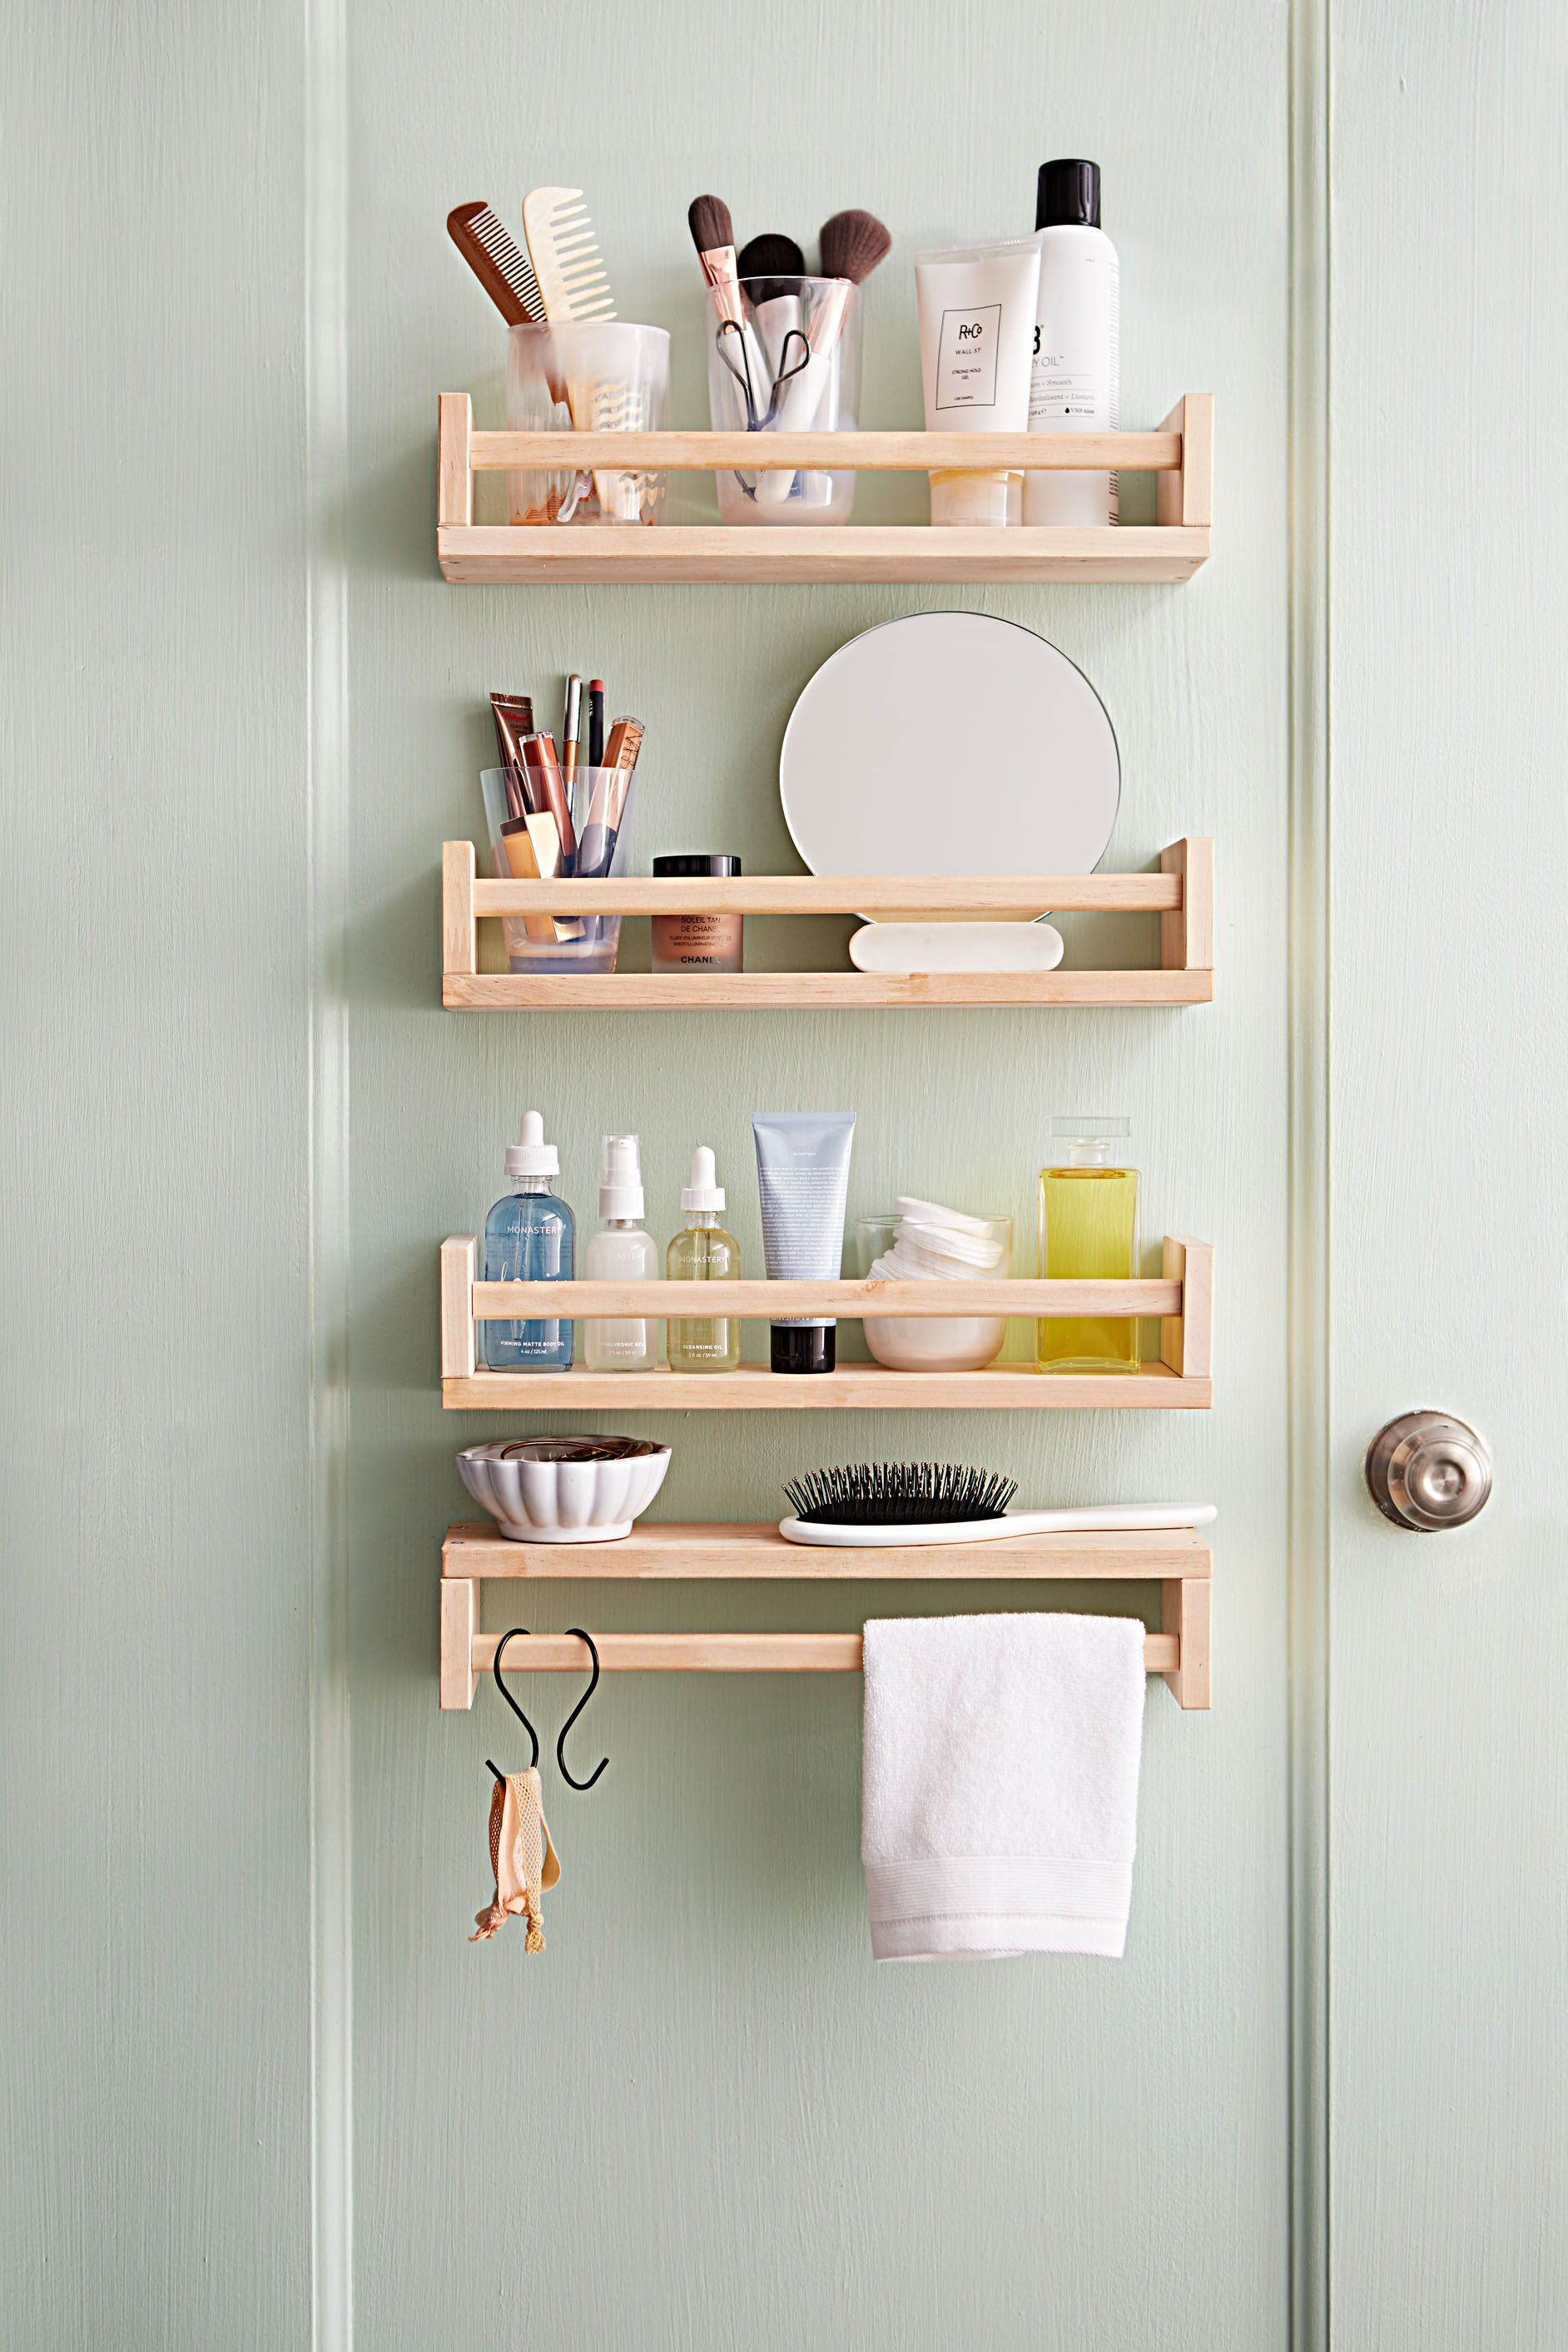 Instant Upgrades That Will Elevate Every Room In Your Home In 2020 Diy Bathroom Storage Small Bathroom Decor Ikea Spice Rack